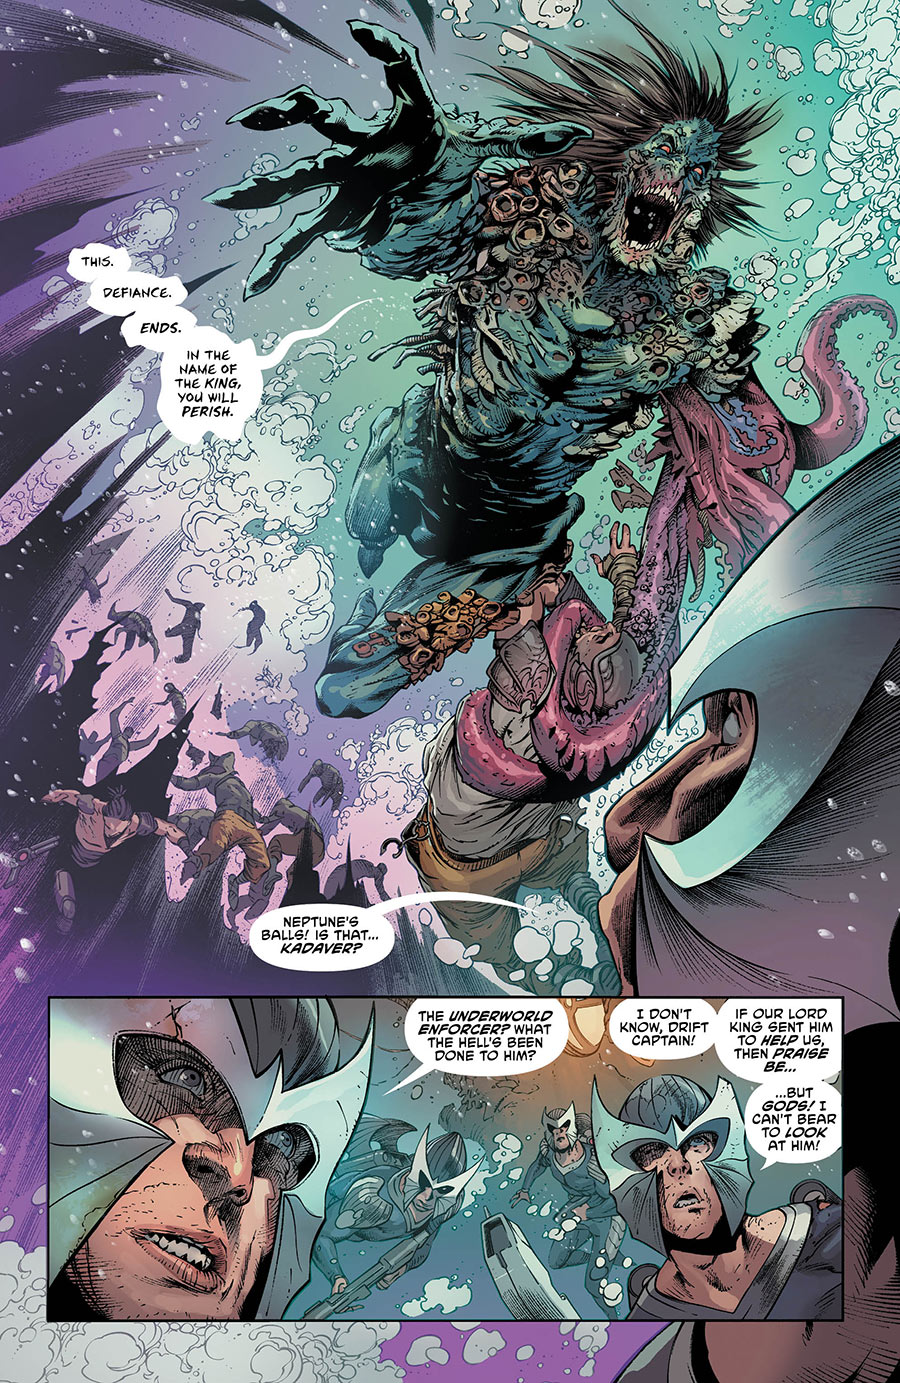 Aquaman 35 _4 - DC Comics News